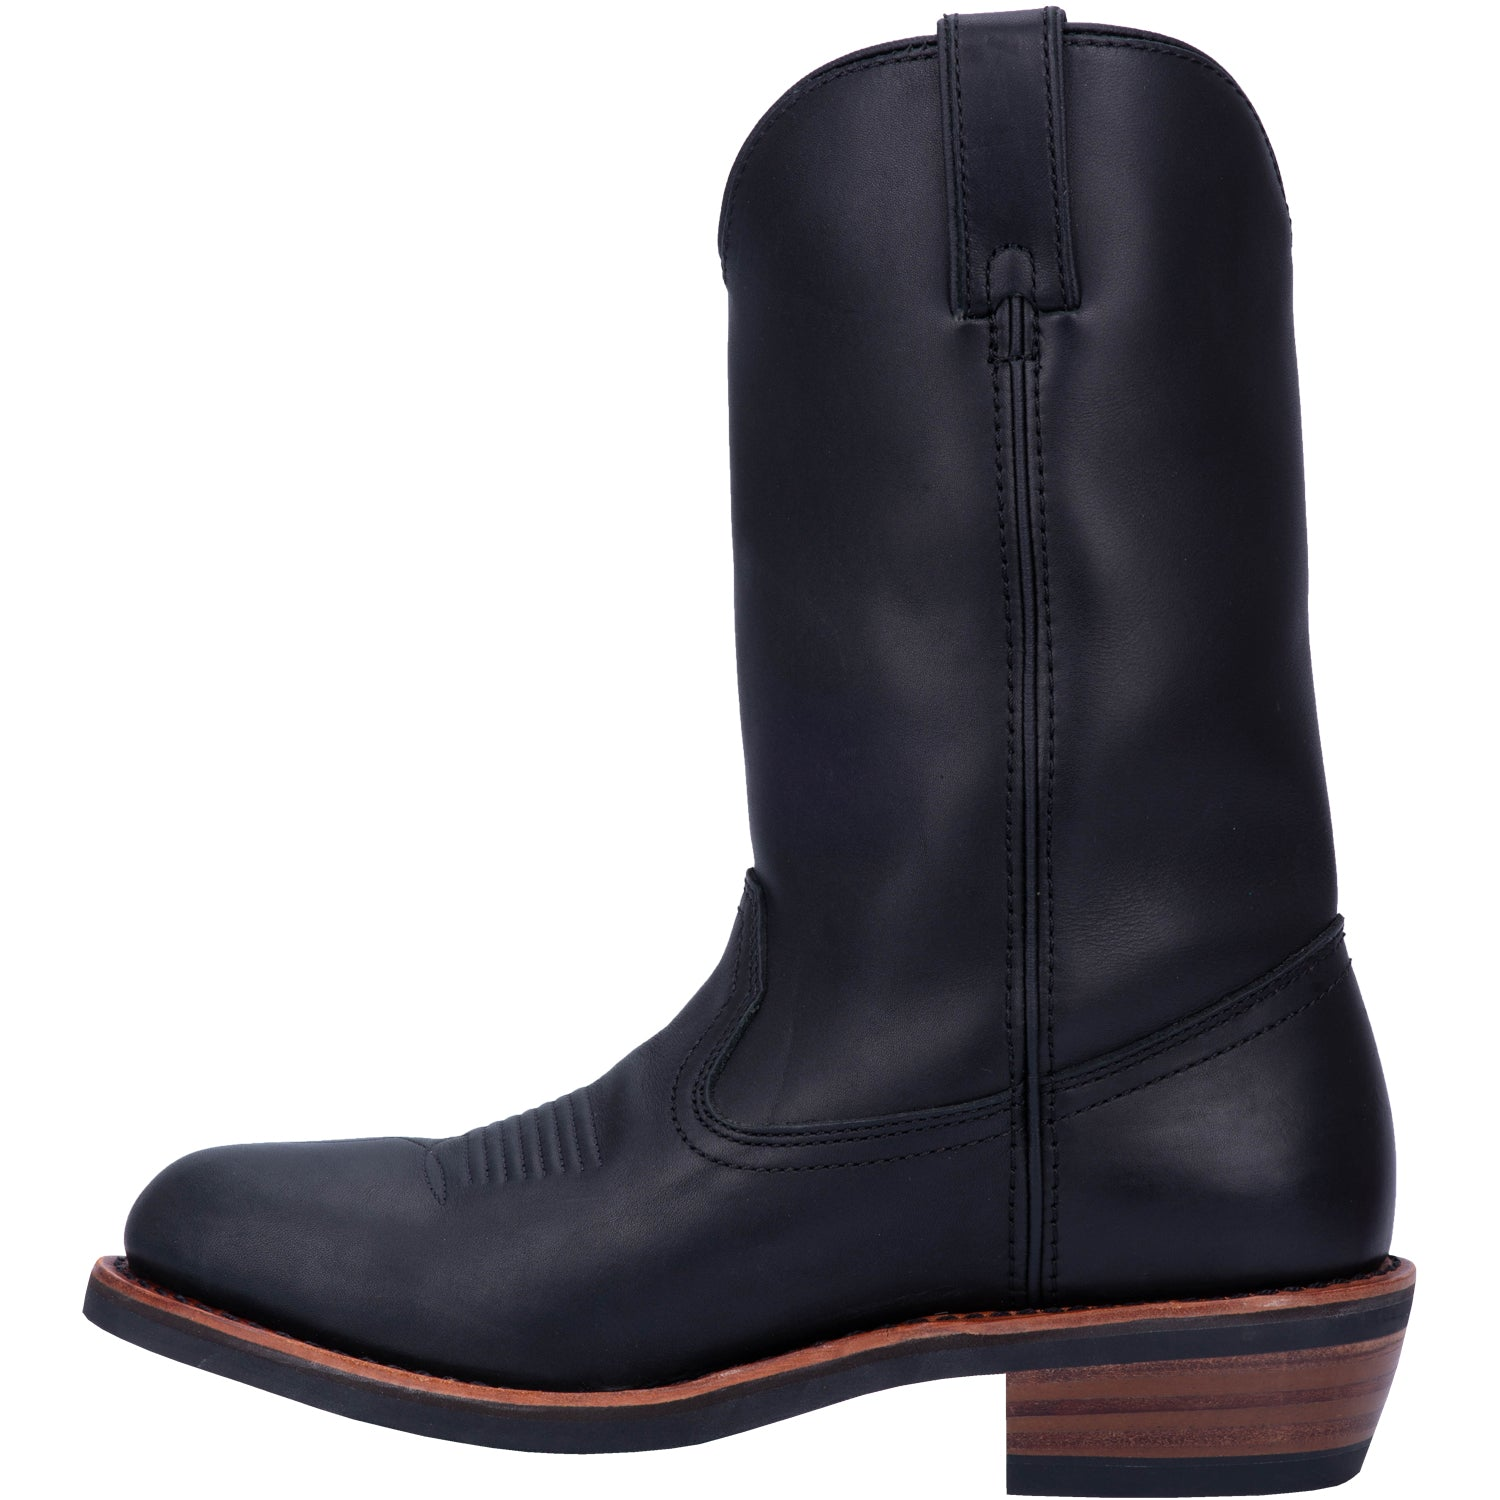 ALBUQUERQUE WATERPROOF LEATHER BOOT 4248832868394